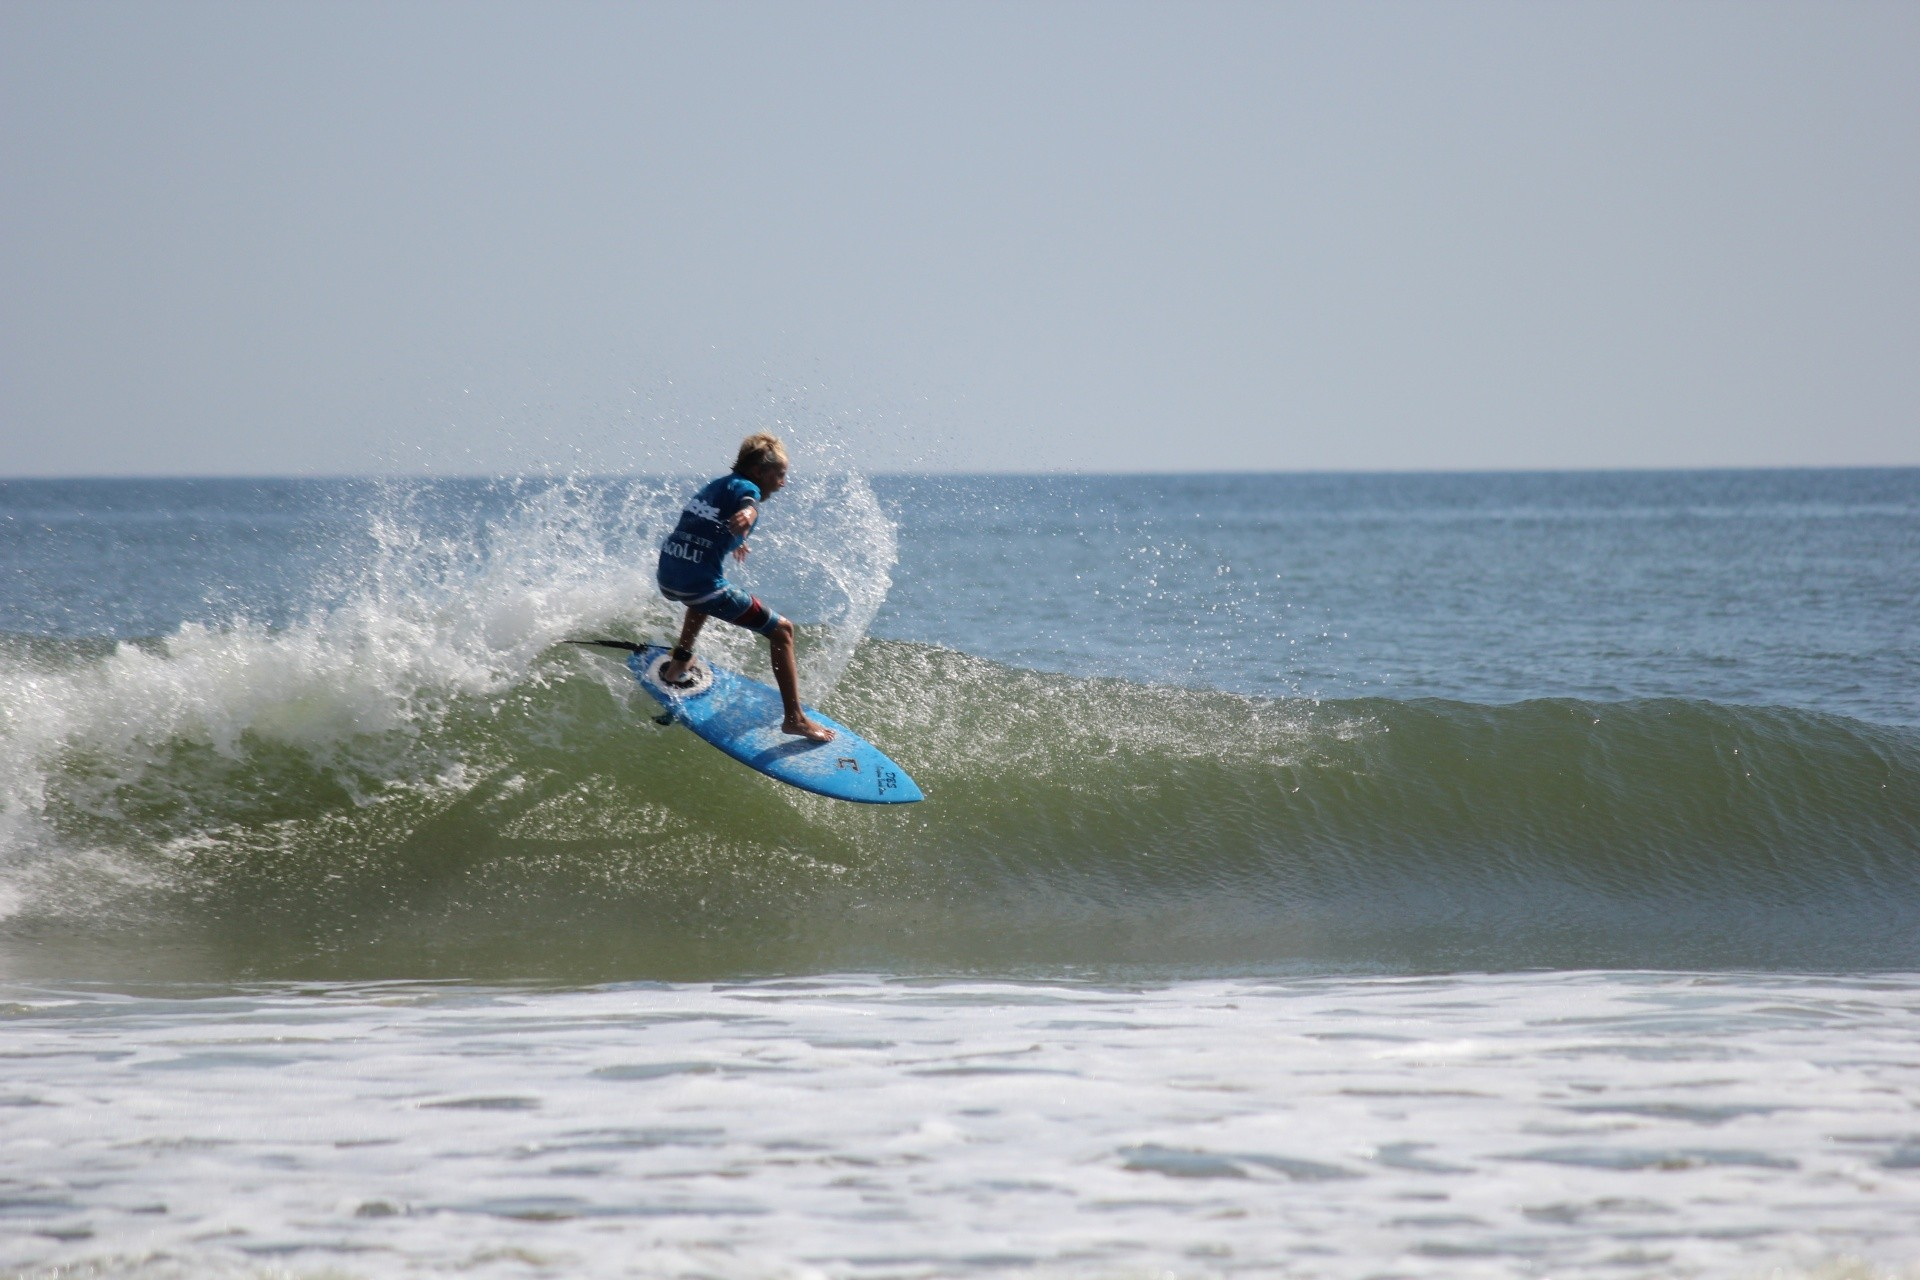 mpe's photo of Jacksonville Beach